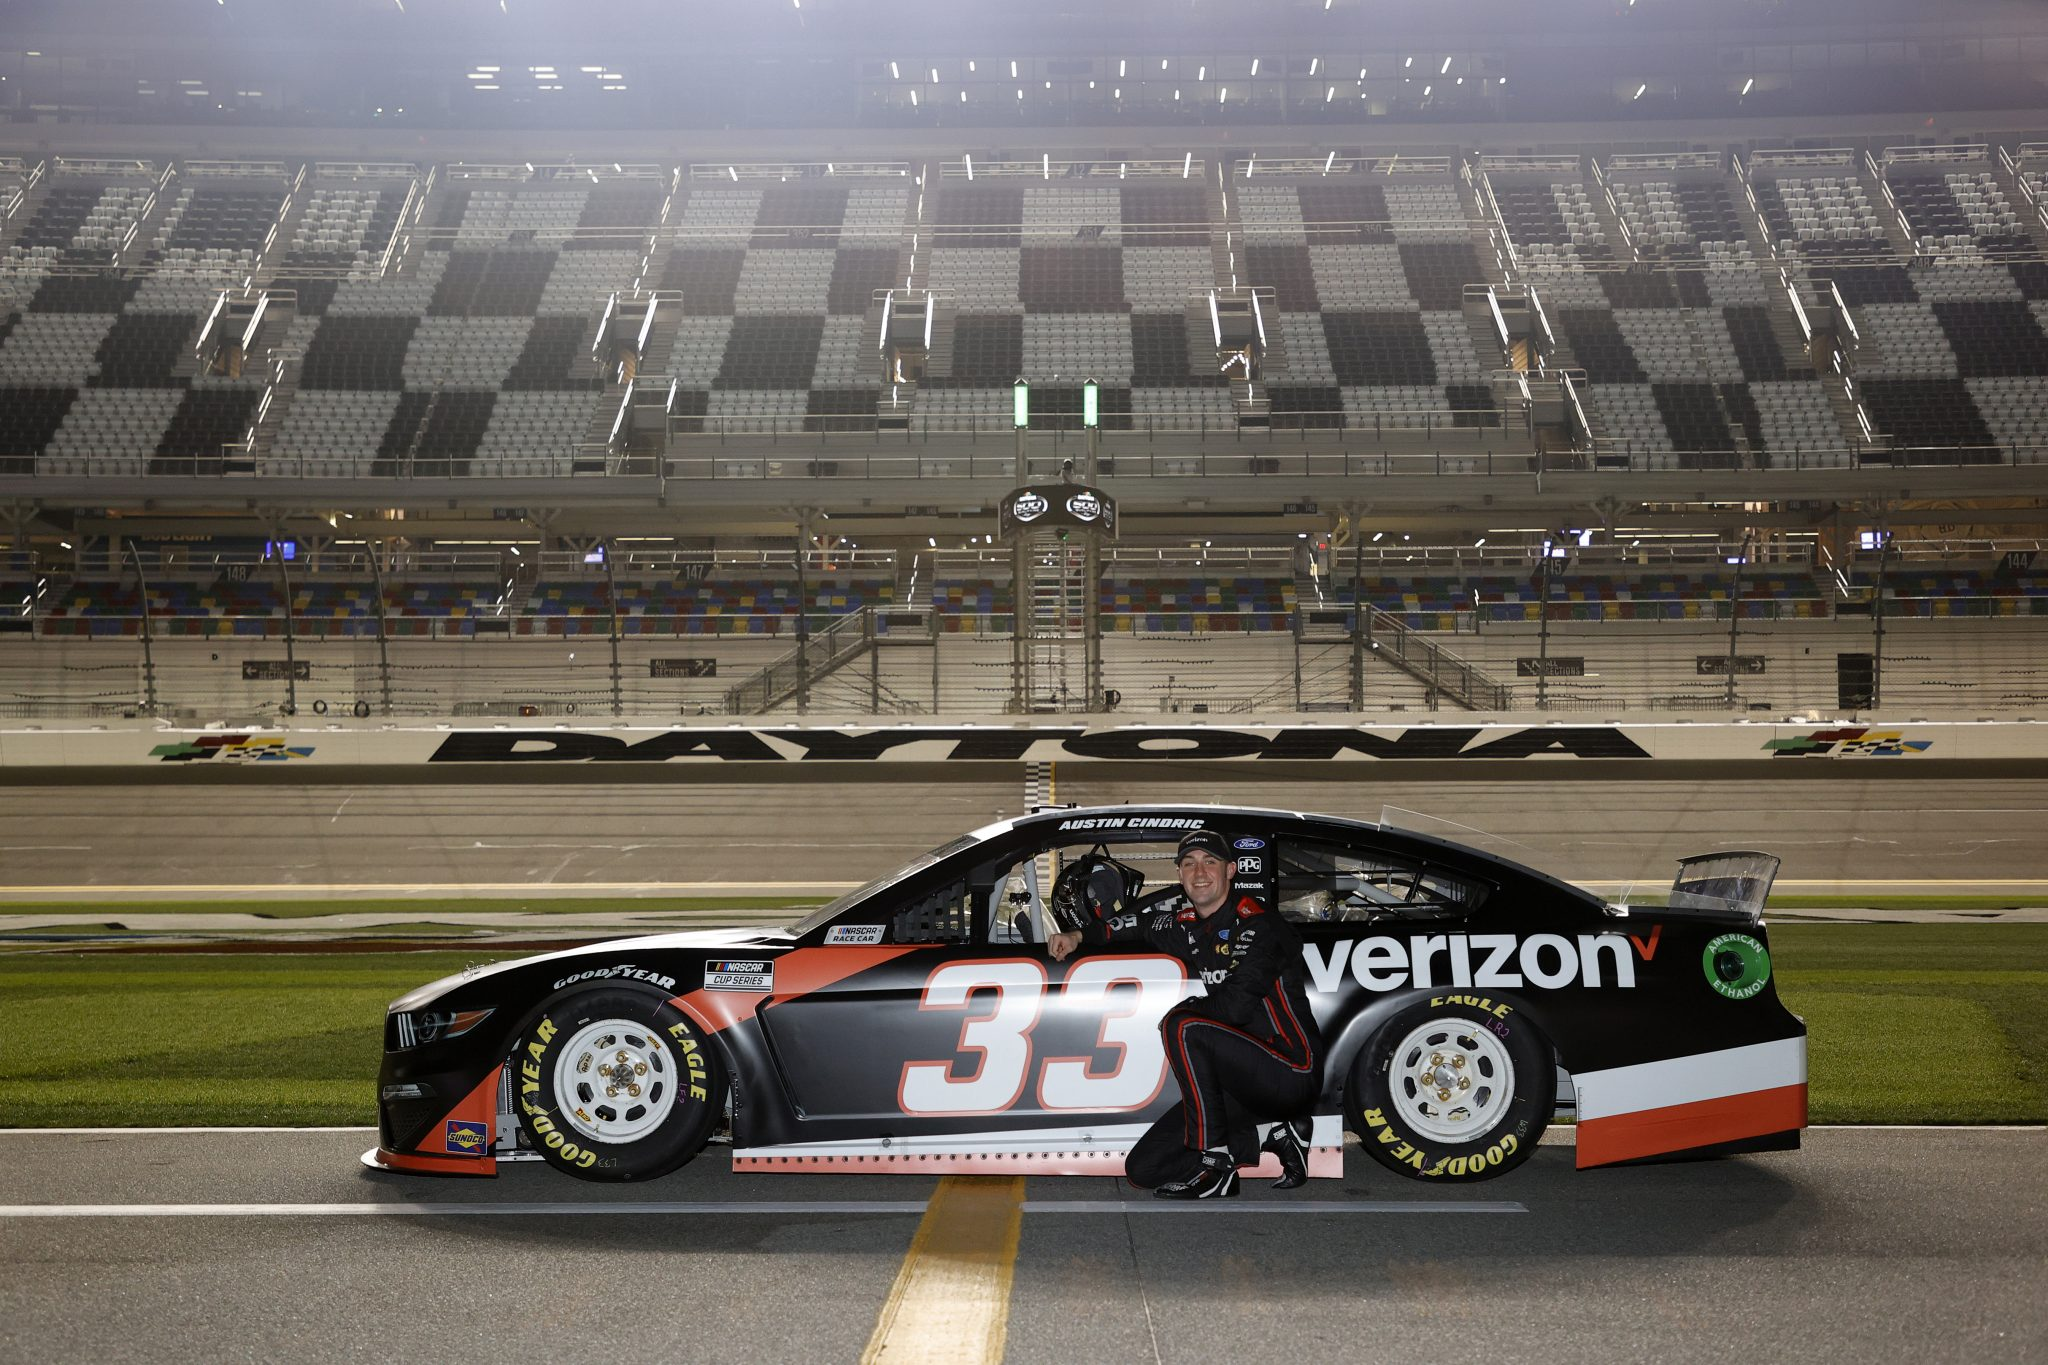 DAYTONA BEACH, FLORIDA - FEBRUARY 10: Austin Cindric, driver of the #33 Verizon 5G Ford, poses for photos during qualifying for the NASCAR Cup Series 63rd Annual Daytona 500 at Daytona International Speedway on February 10, 2021 in Daytona Beach, Florida. (Photo by Jared C. Tilton/Getty Images) | Getty Images